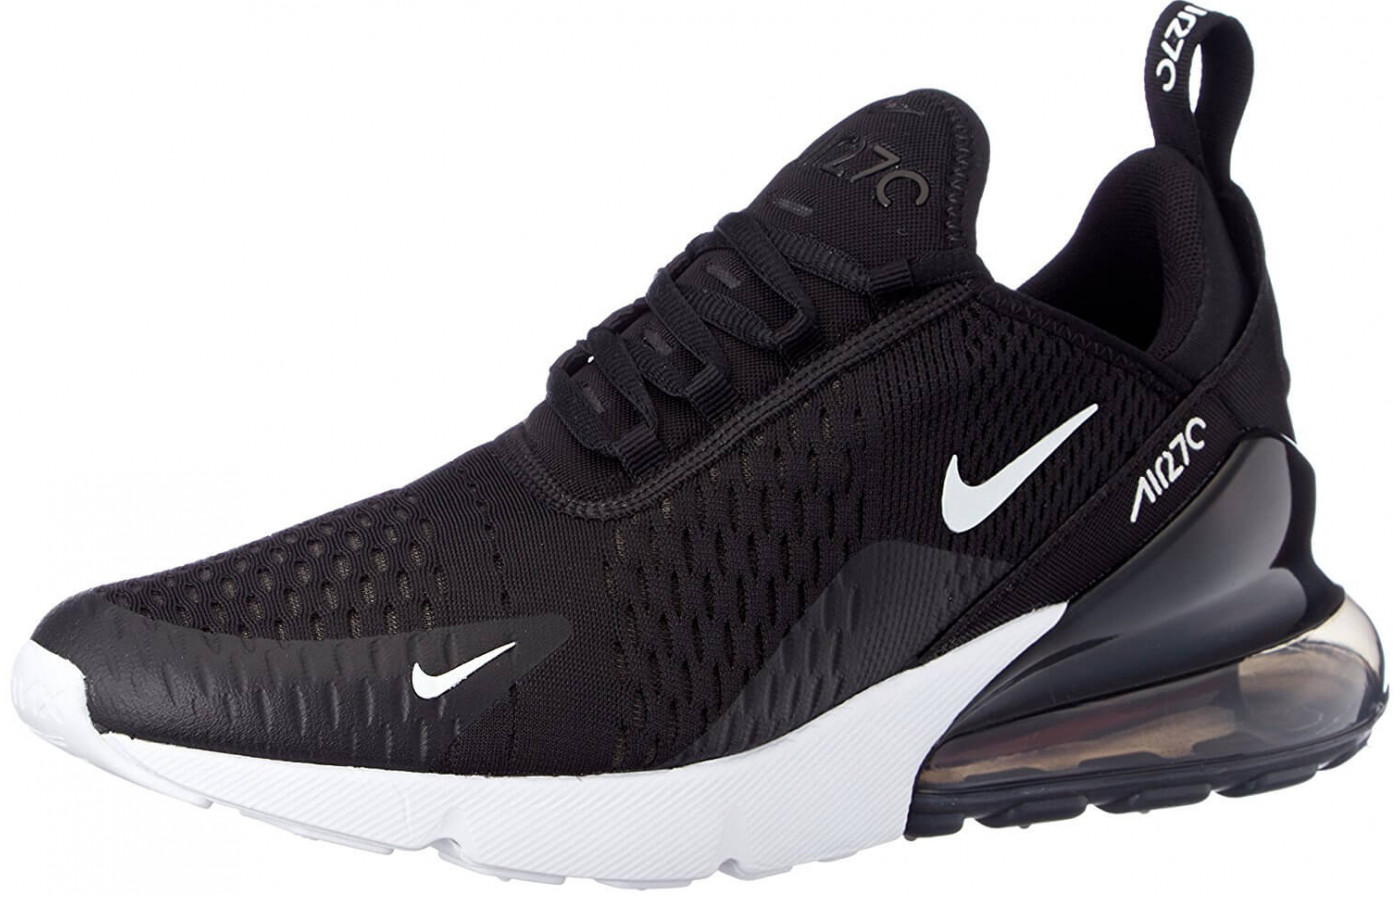 promo code 16f27 14641 Nike Air Max 270. Mesh upper and 270 degrees of Air ...